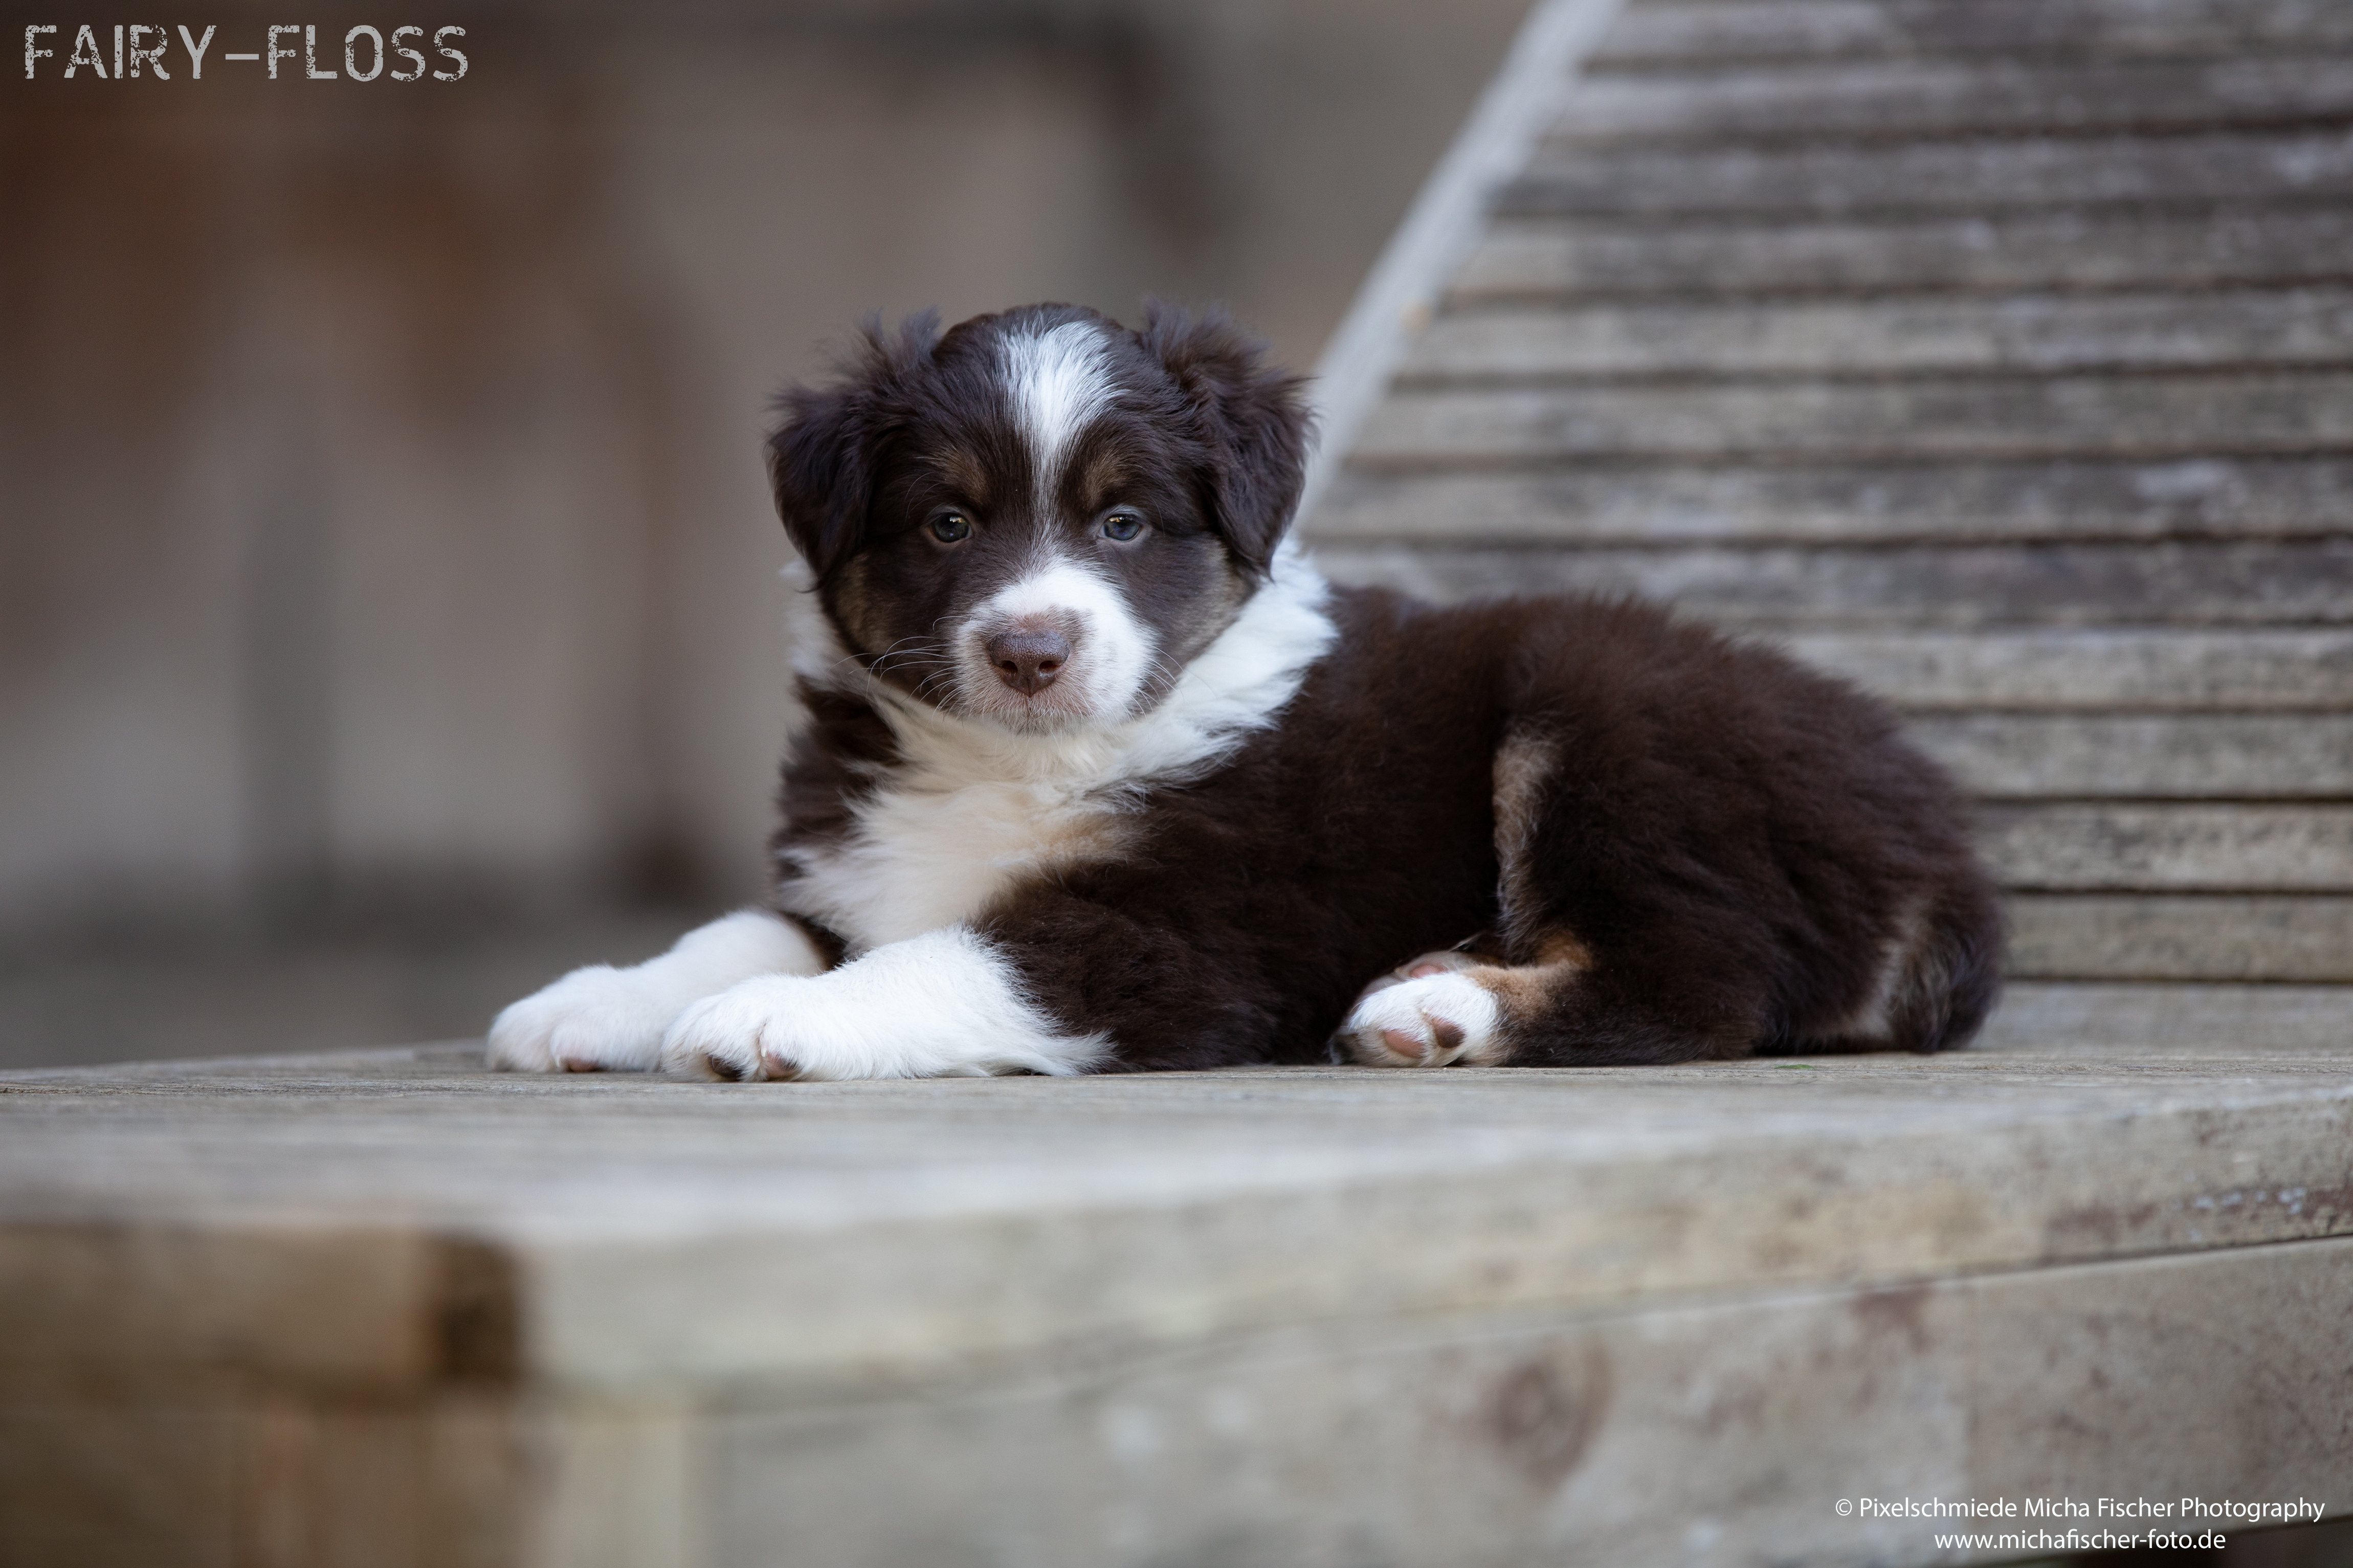 Fairy-Floss-Aussies - Mini Aussie / Mini Amercian Shepherd